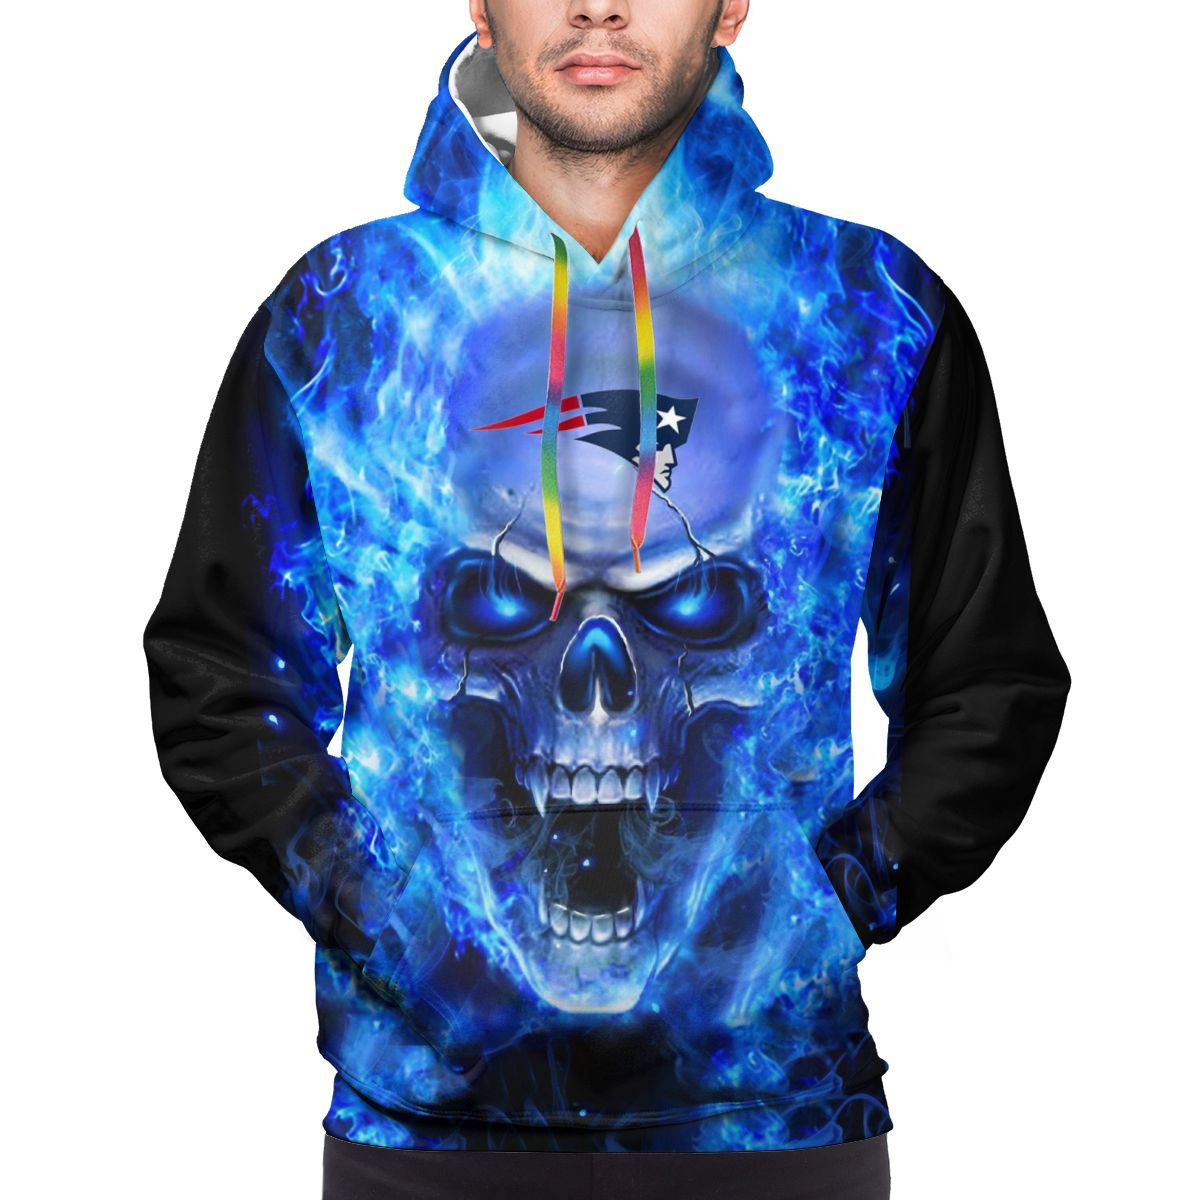 3D Skull Patriots Logo Print Hoodies For Men Pullover Sweatshirt